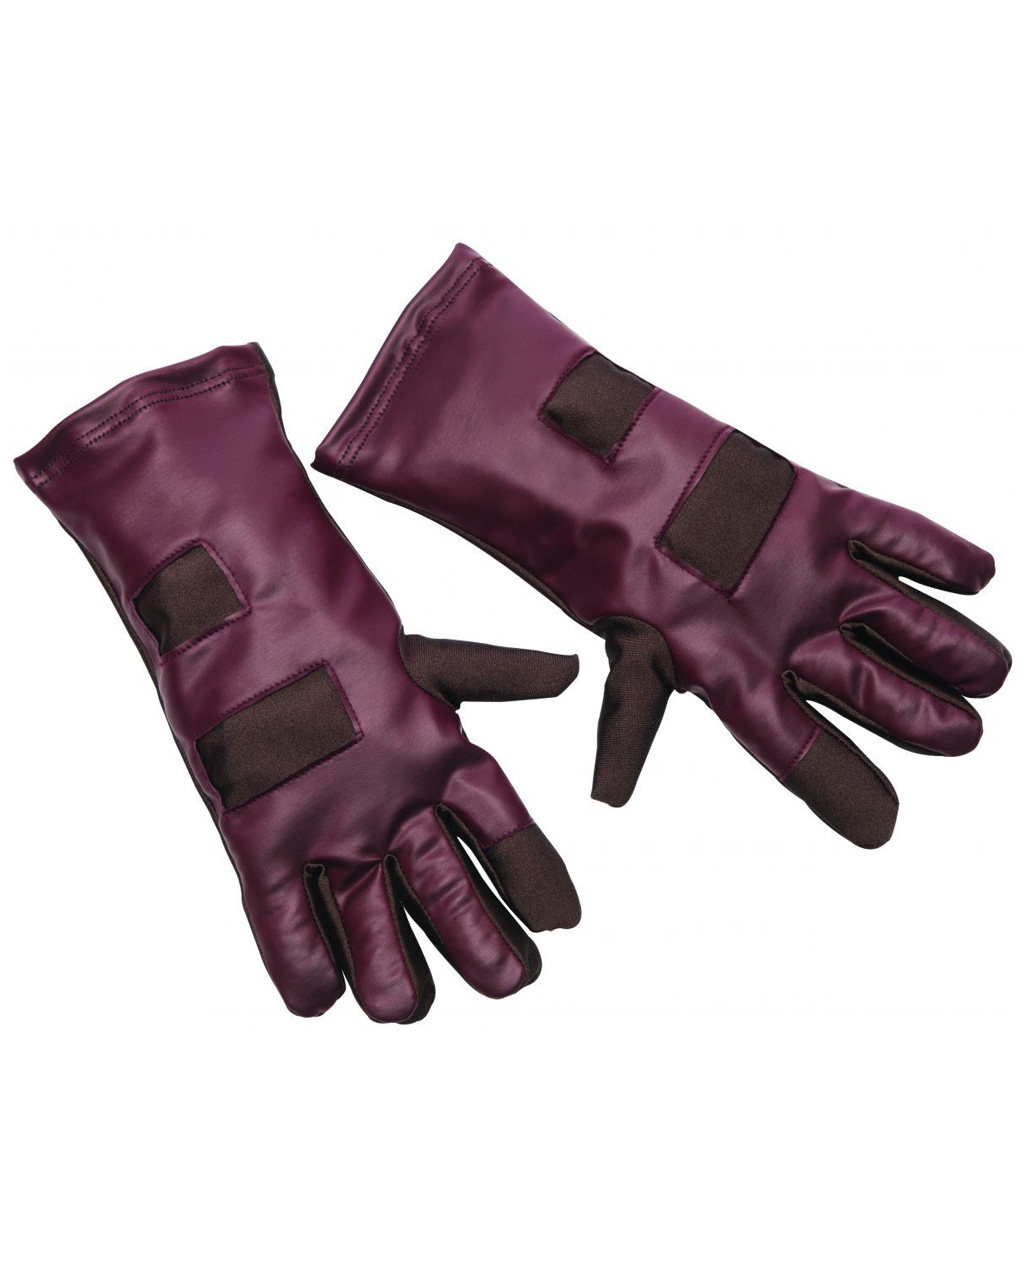 Star-Lord Gloves Avengers Endgame Fancy Dress Halloween Adult Costume Accessory